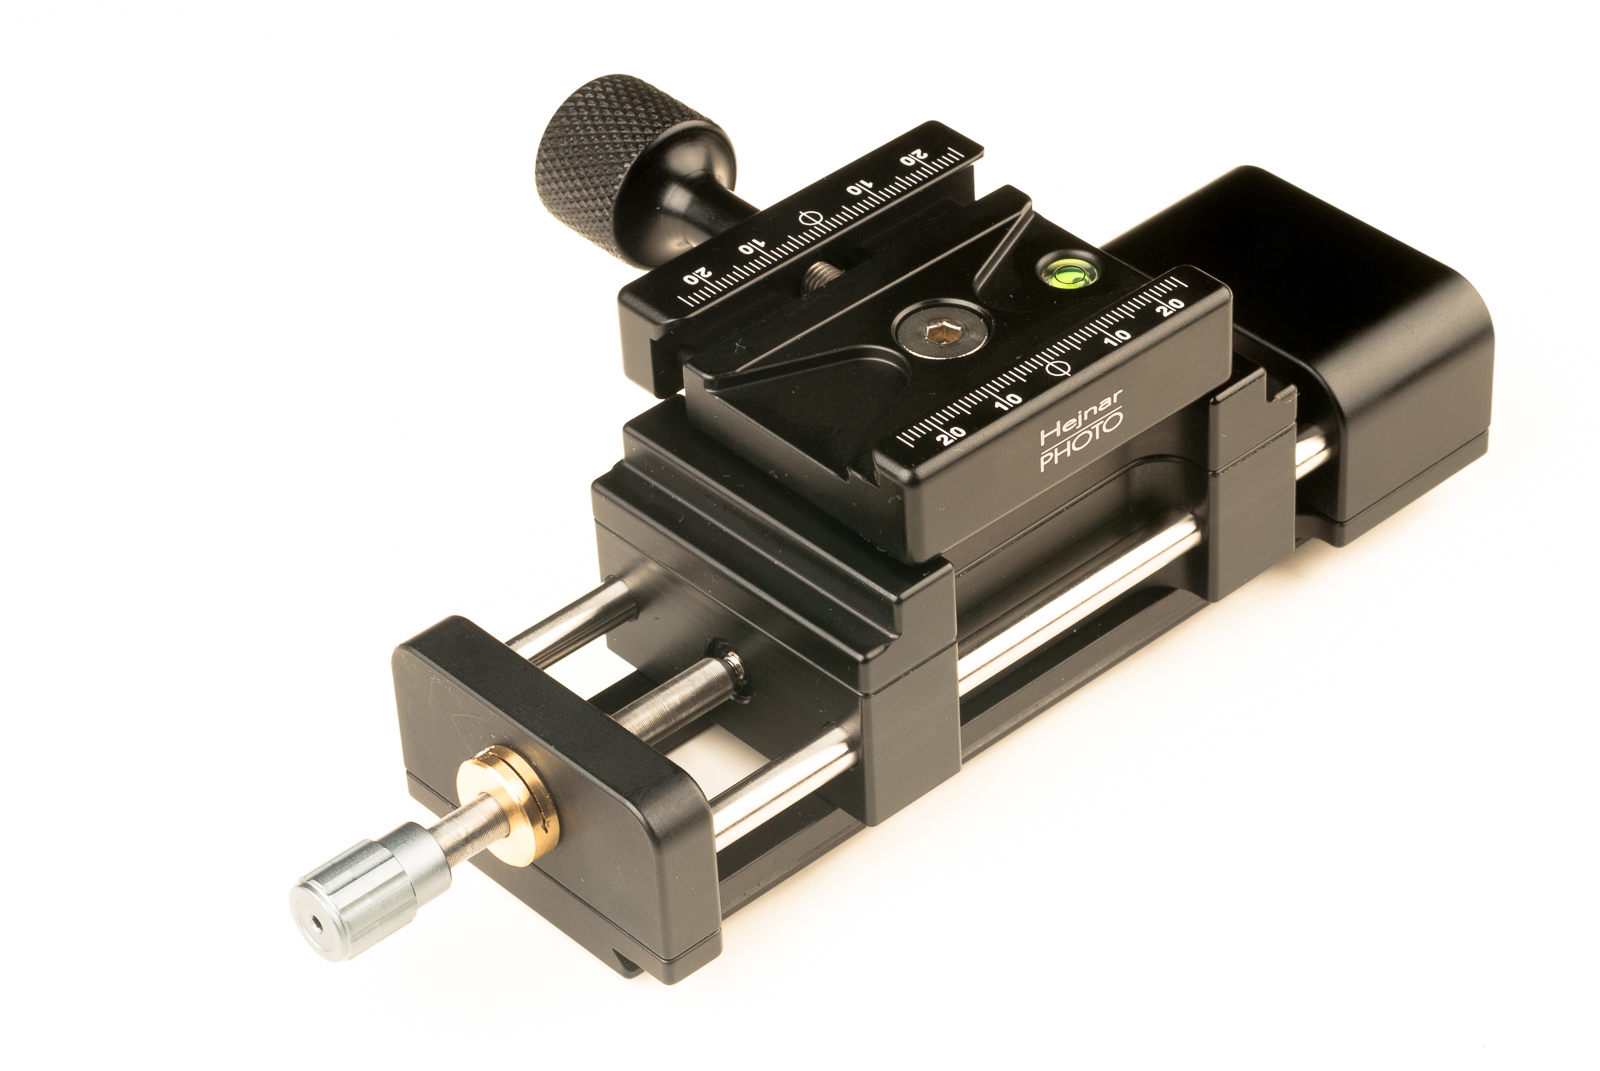 Hejnar PHOTO MS4-100-1 Macro Rail - F72b QR clamp reorientation